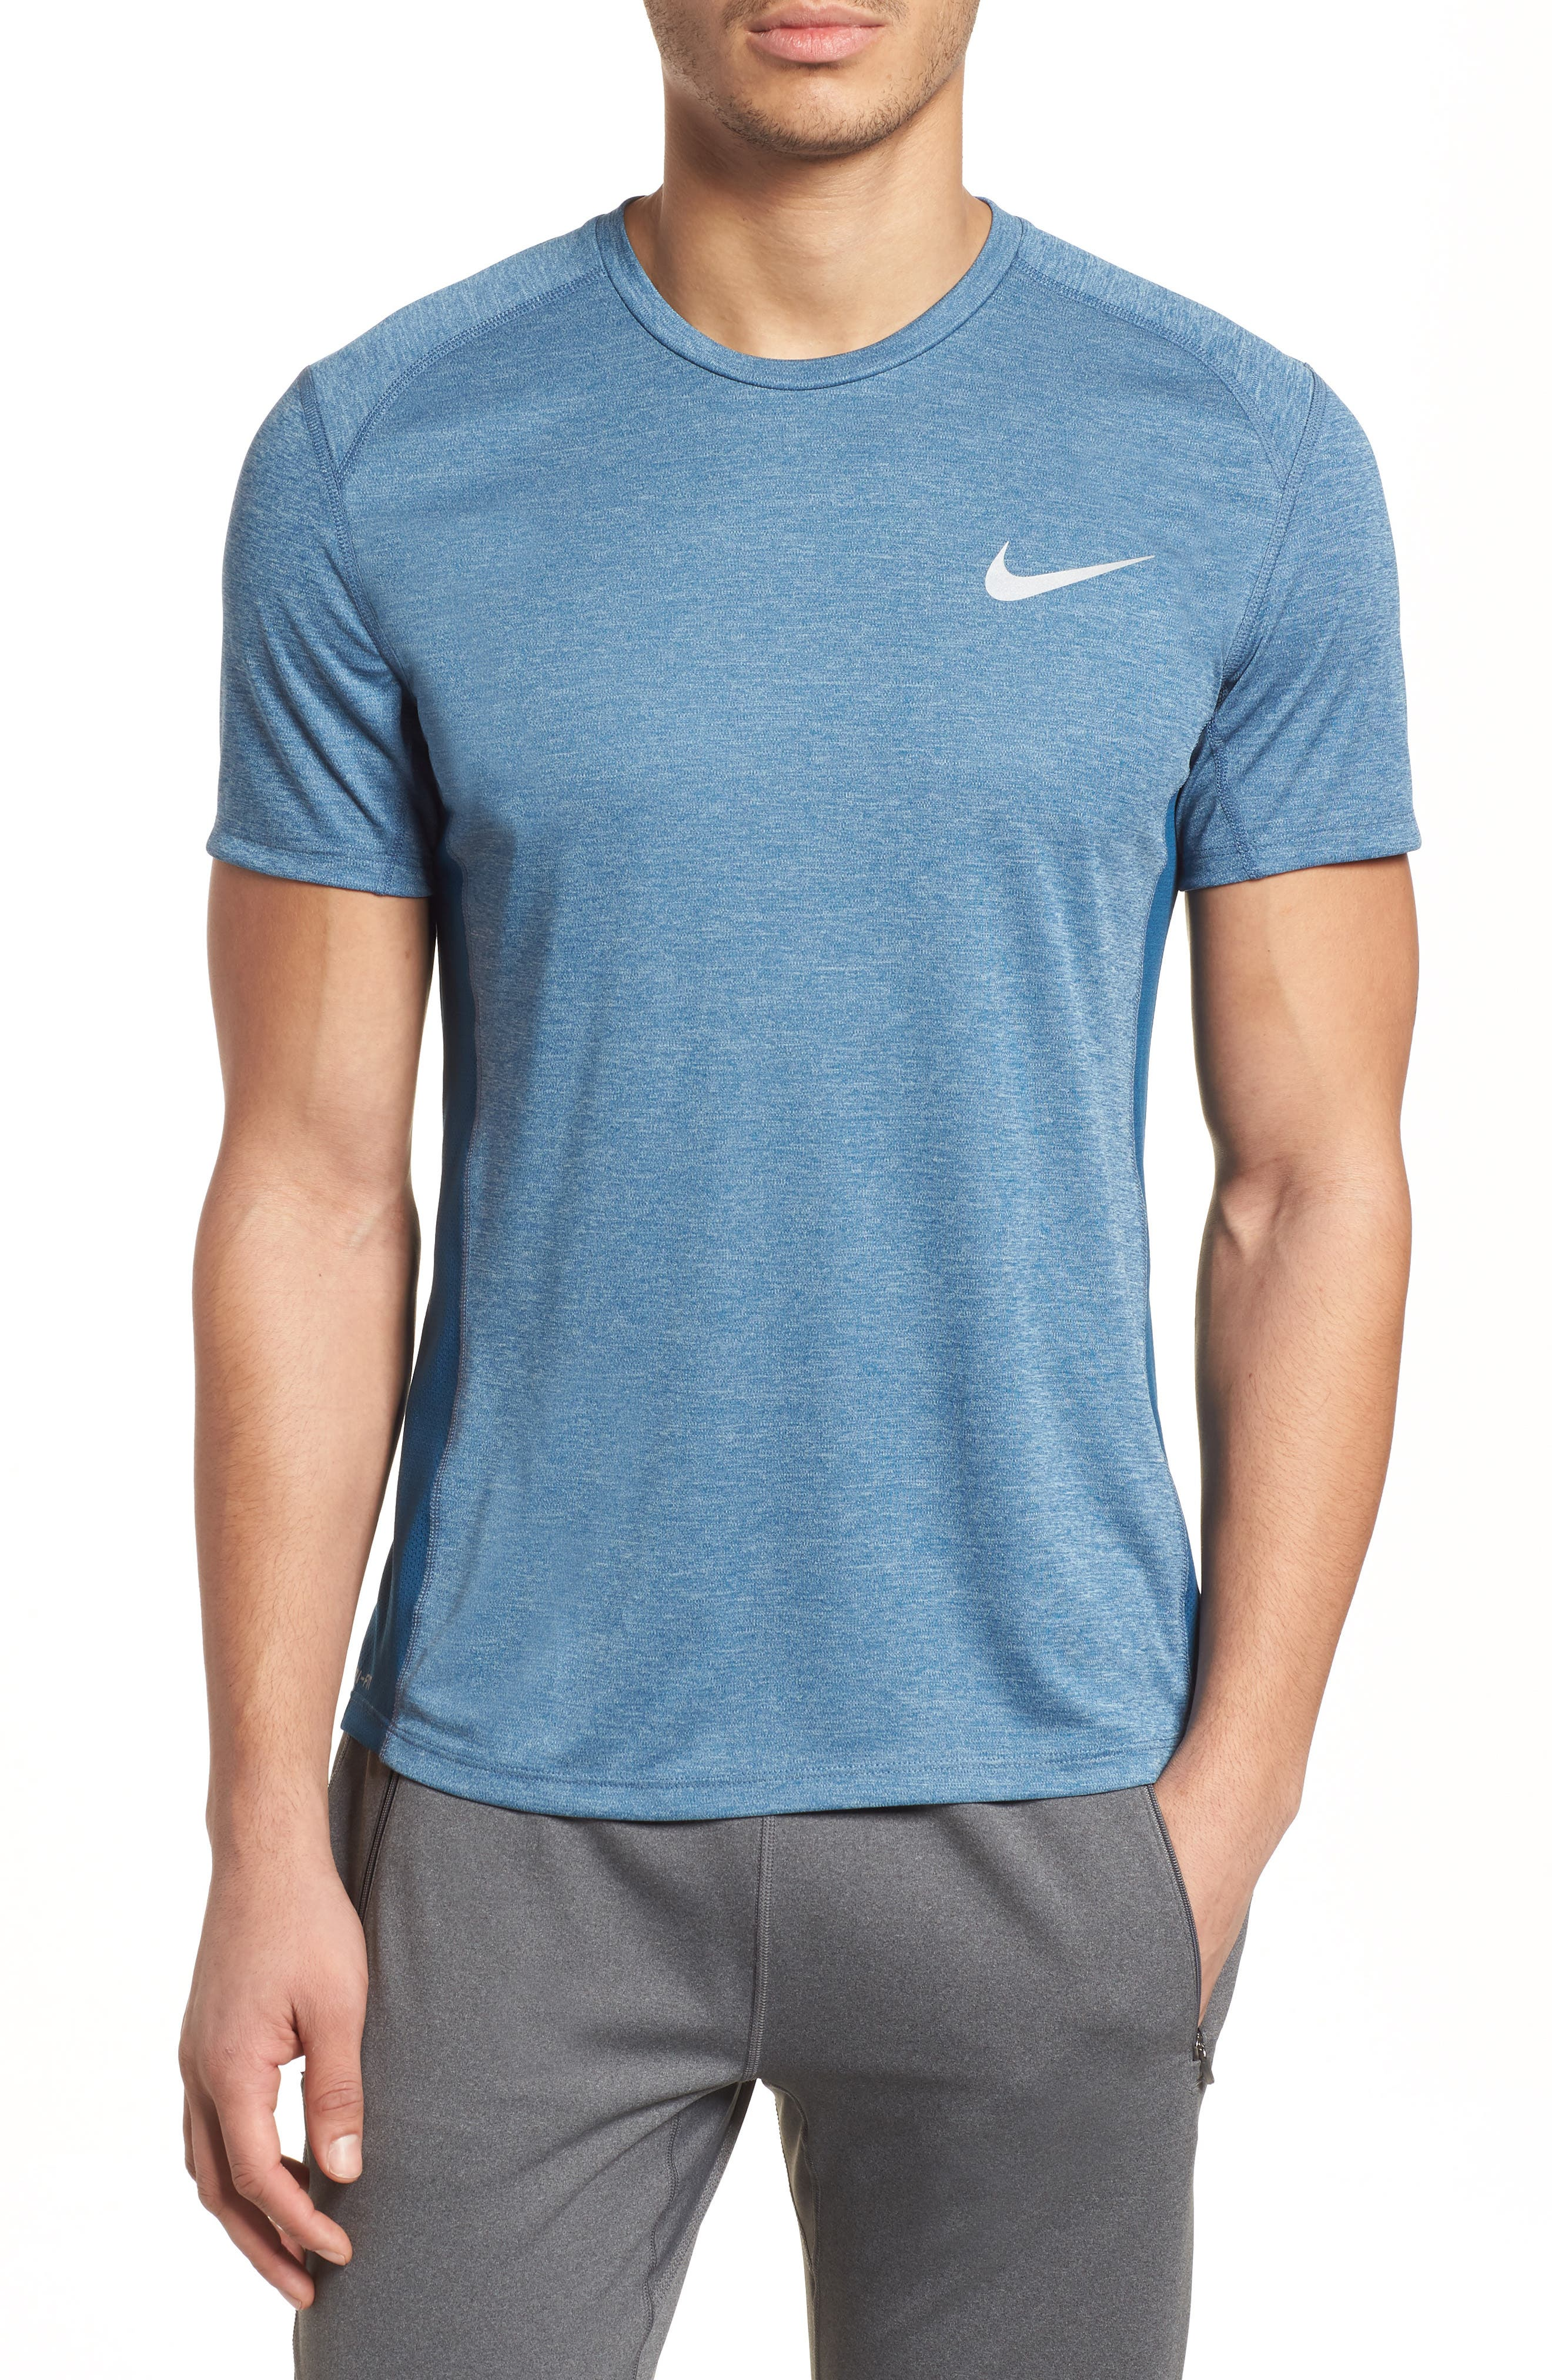 Dry Miler Running Top,                         Main,                         color, Blue Force/ Heather